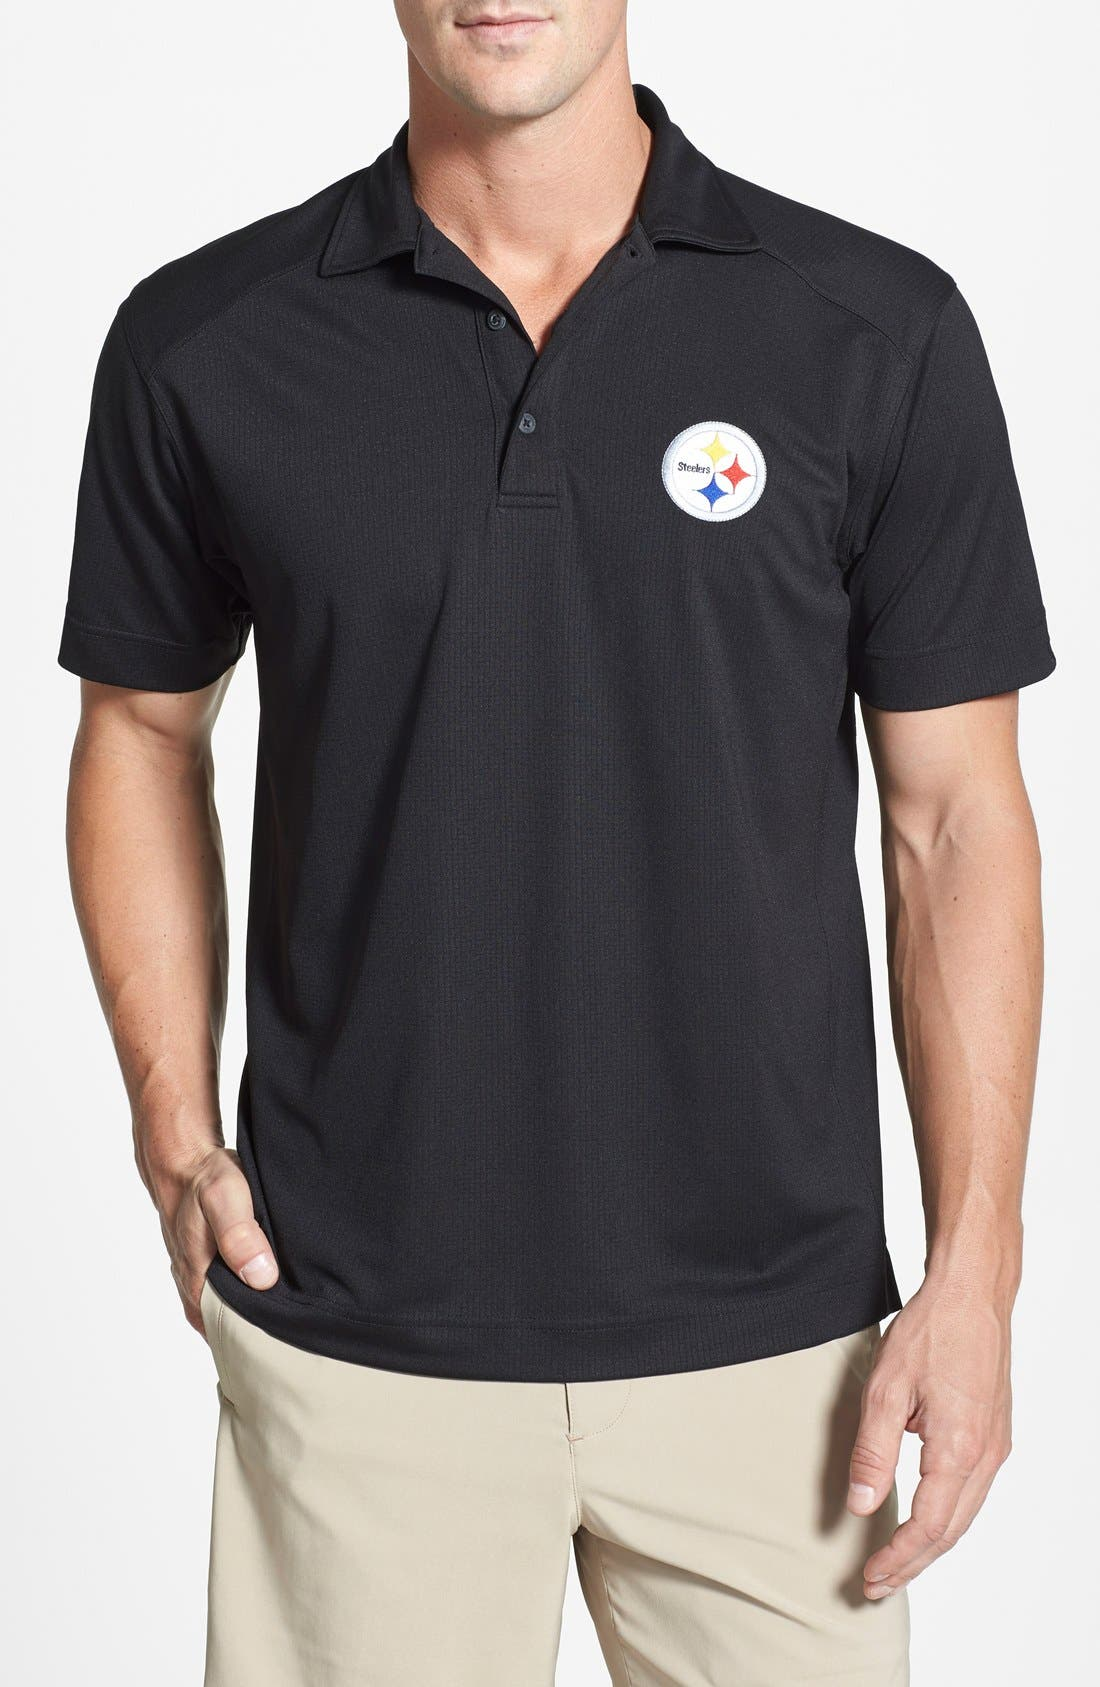 Pittsburgh Steelers - Genre DryTec Moisture Wicking Polo,                             Main thumbnail 1, color,                             Black